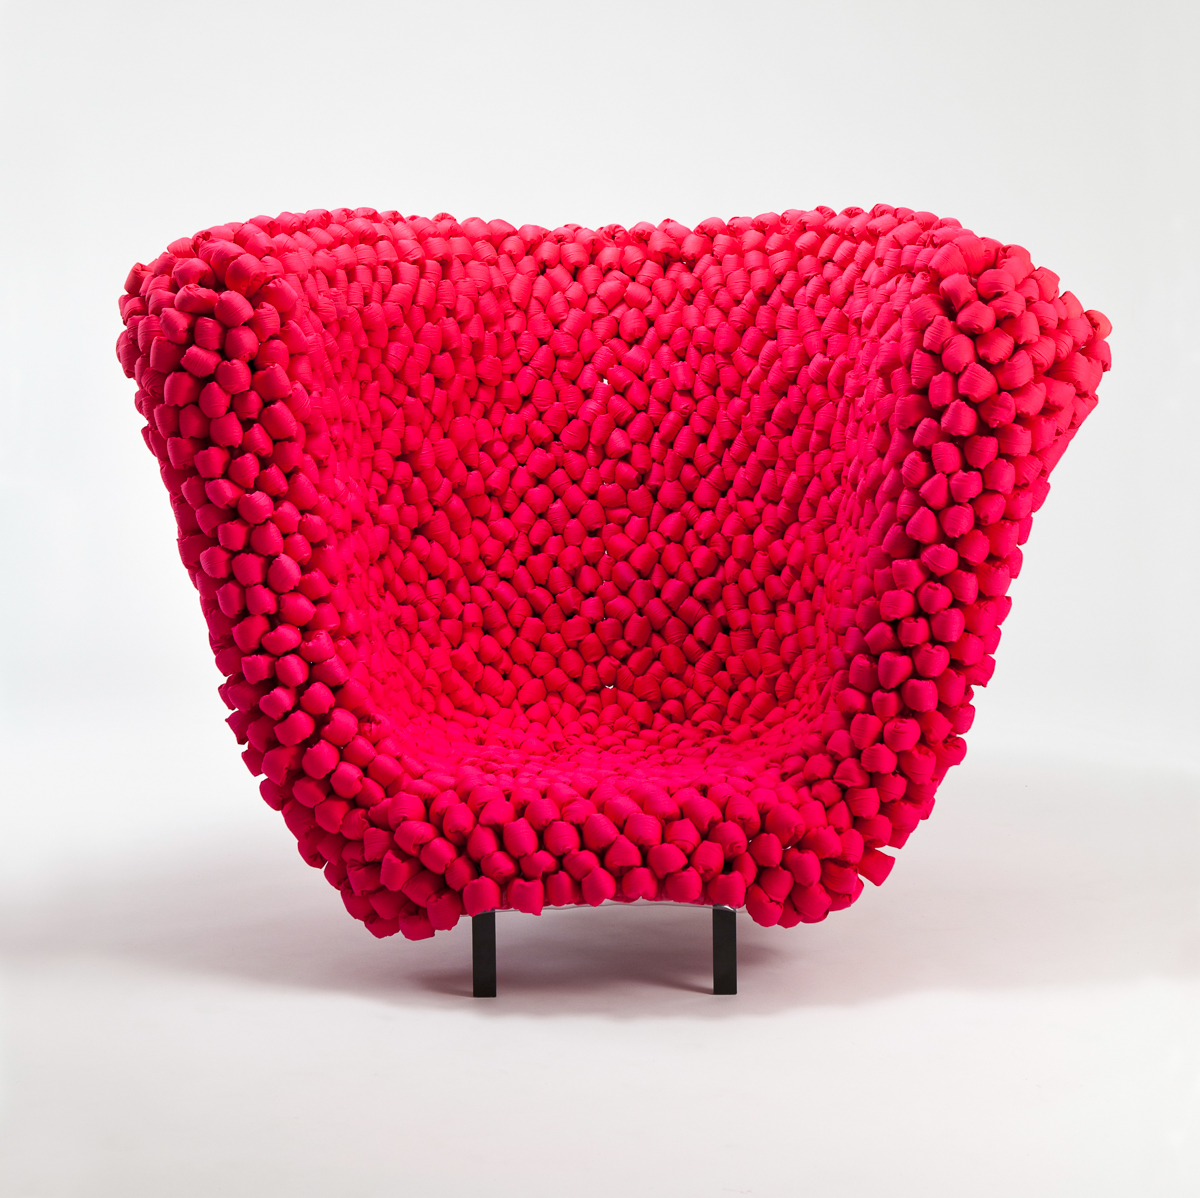 Rethinking Soft Materials In Furniture Design: Unique Chair Collection